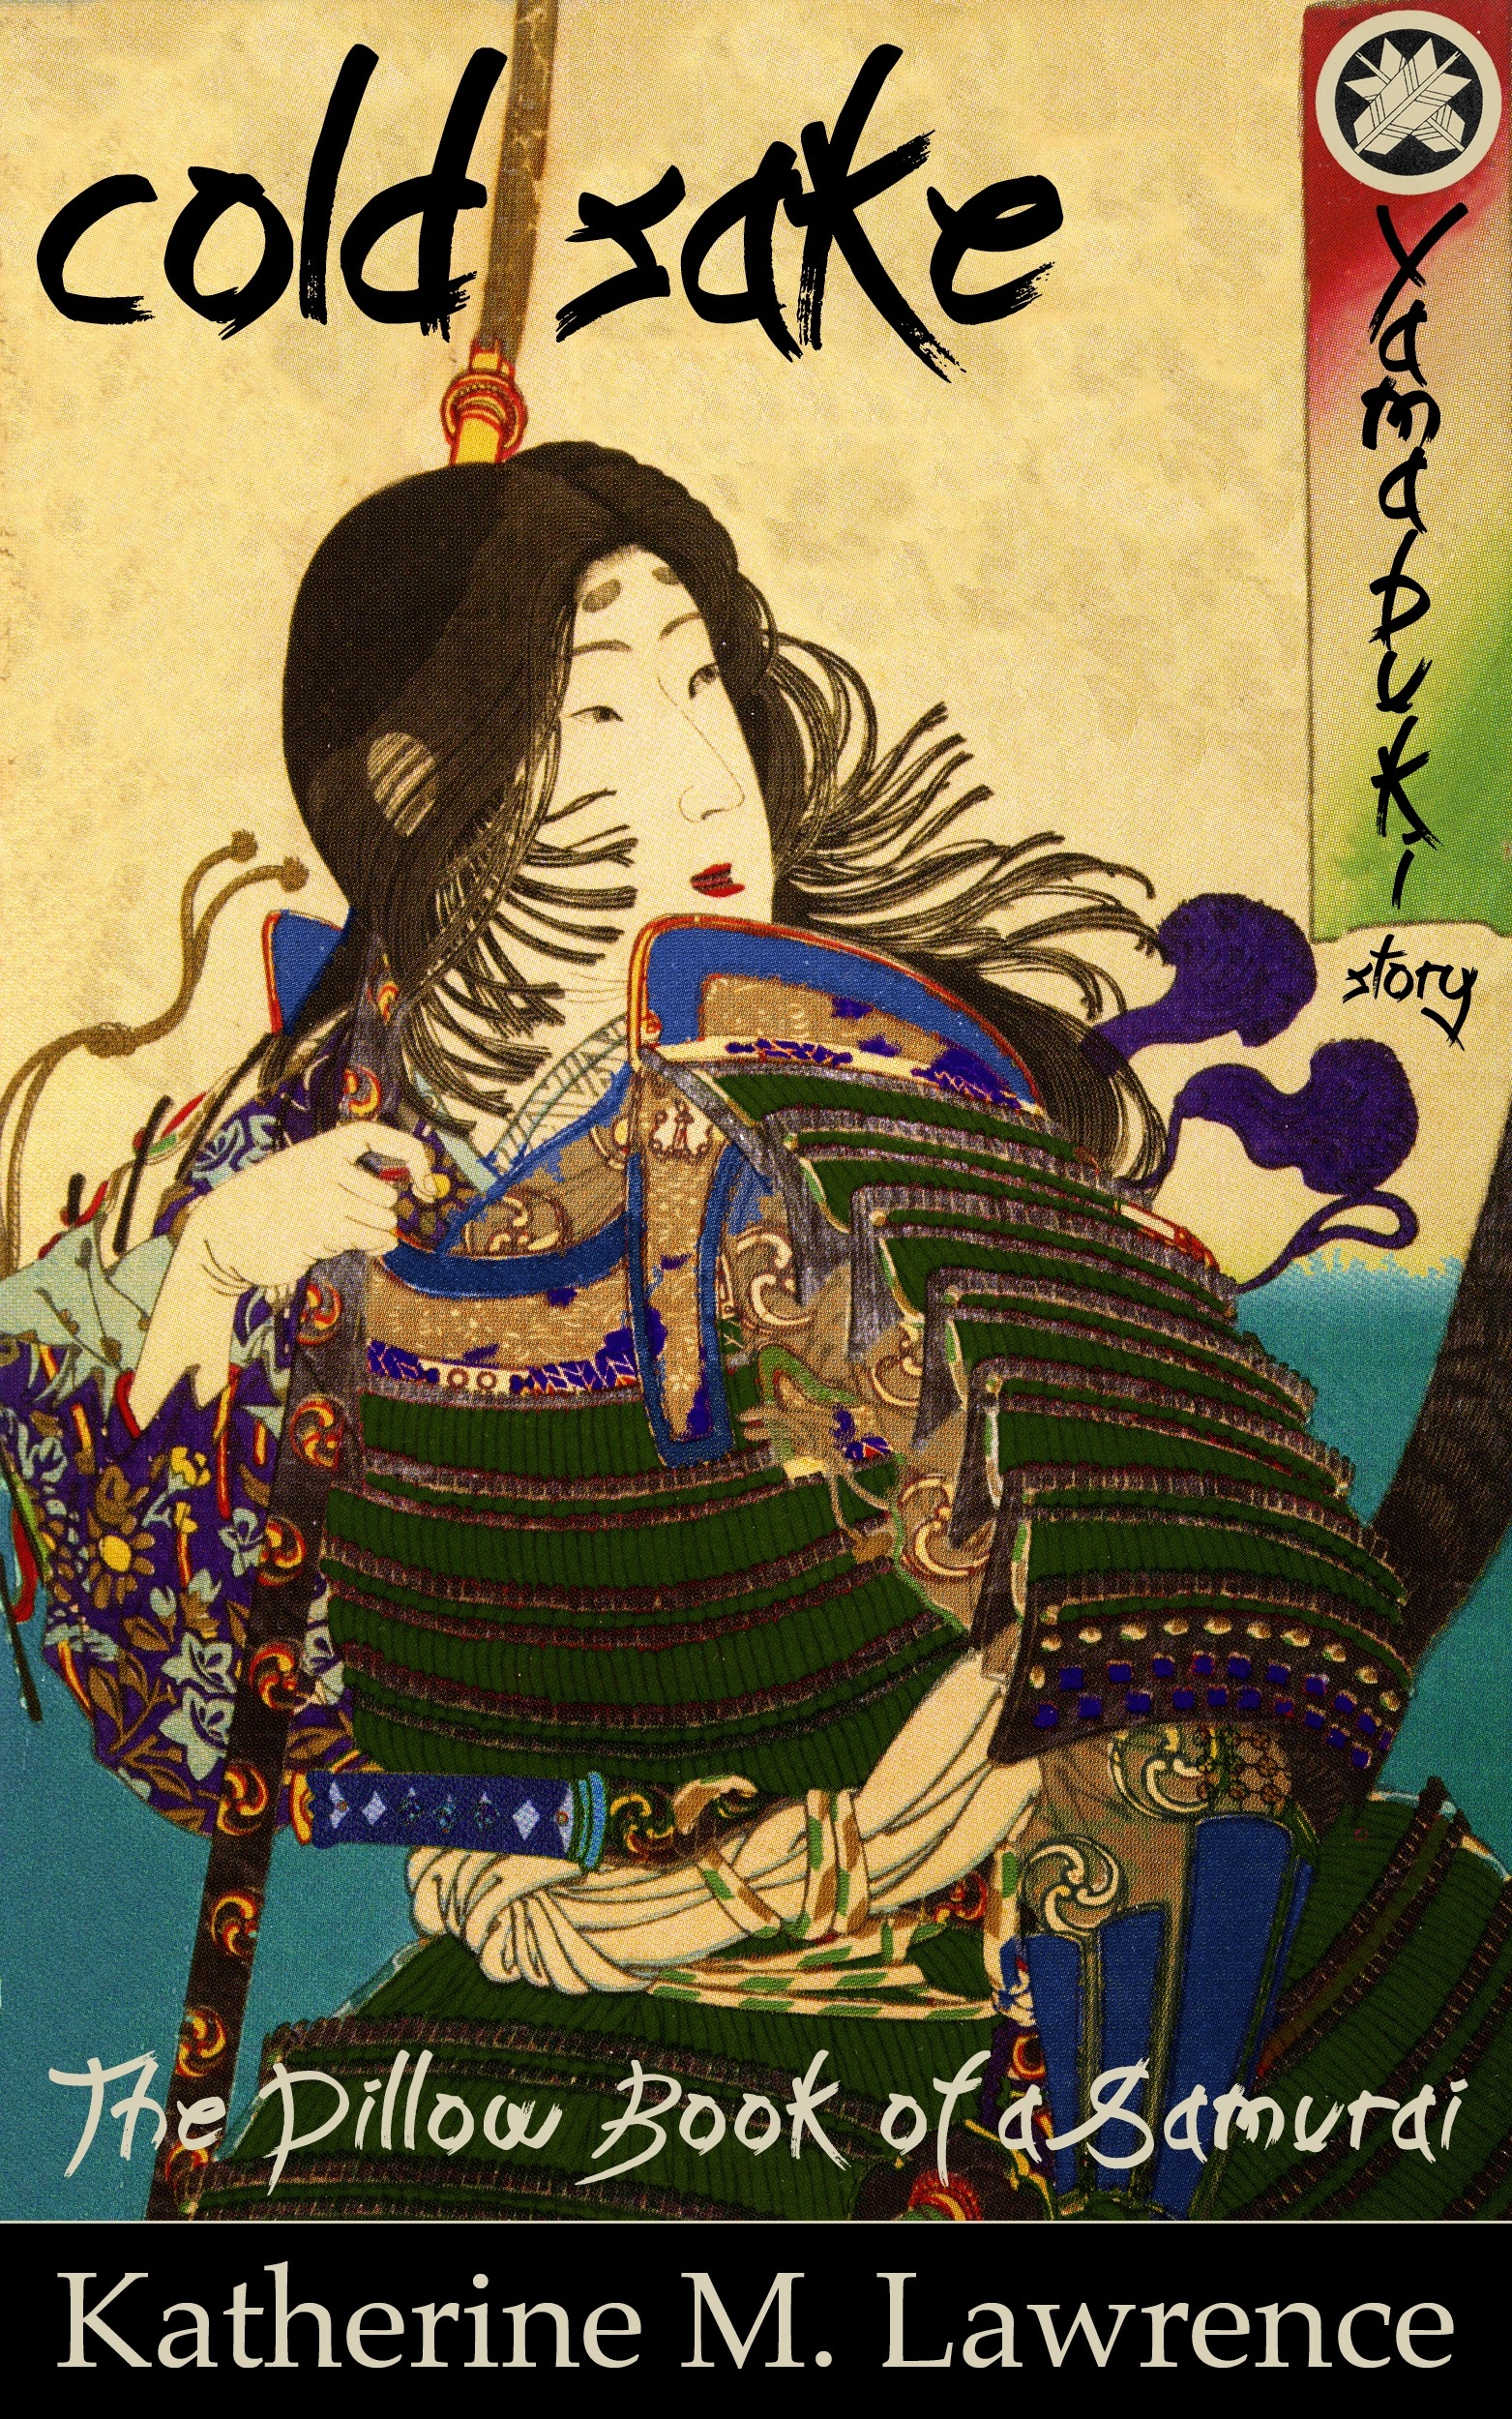 Cold Saké, A Yamabuki Story (Kindle) A young woman samurai in ancient Japan encounters mysteries at a remote country inn